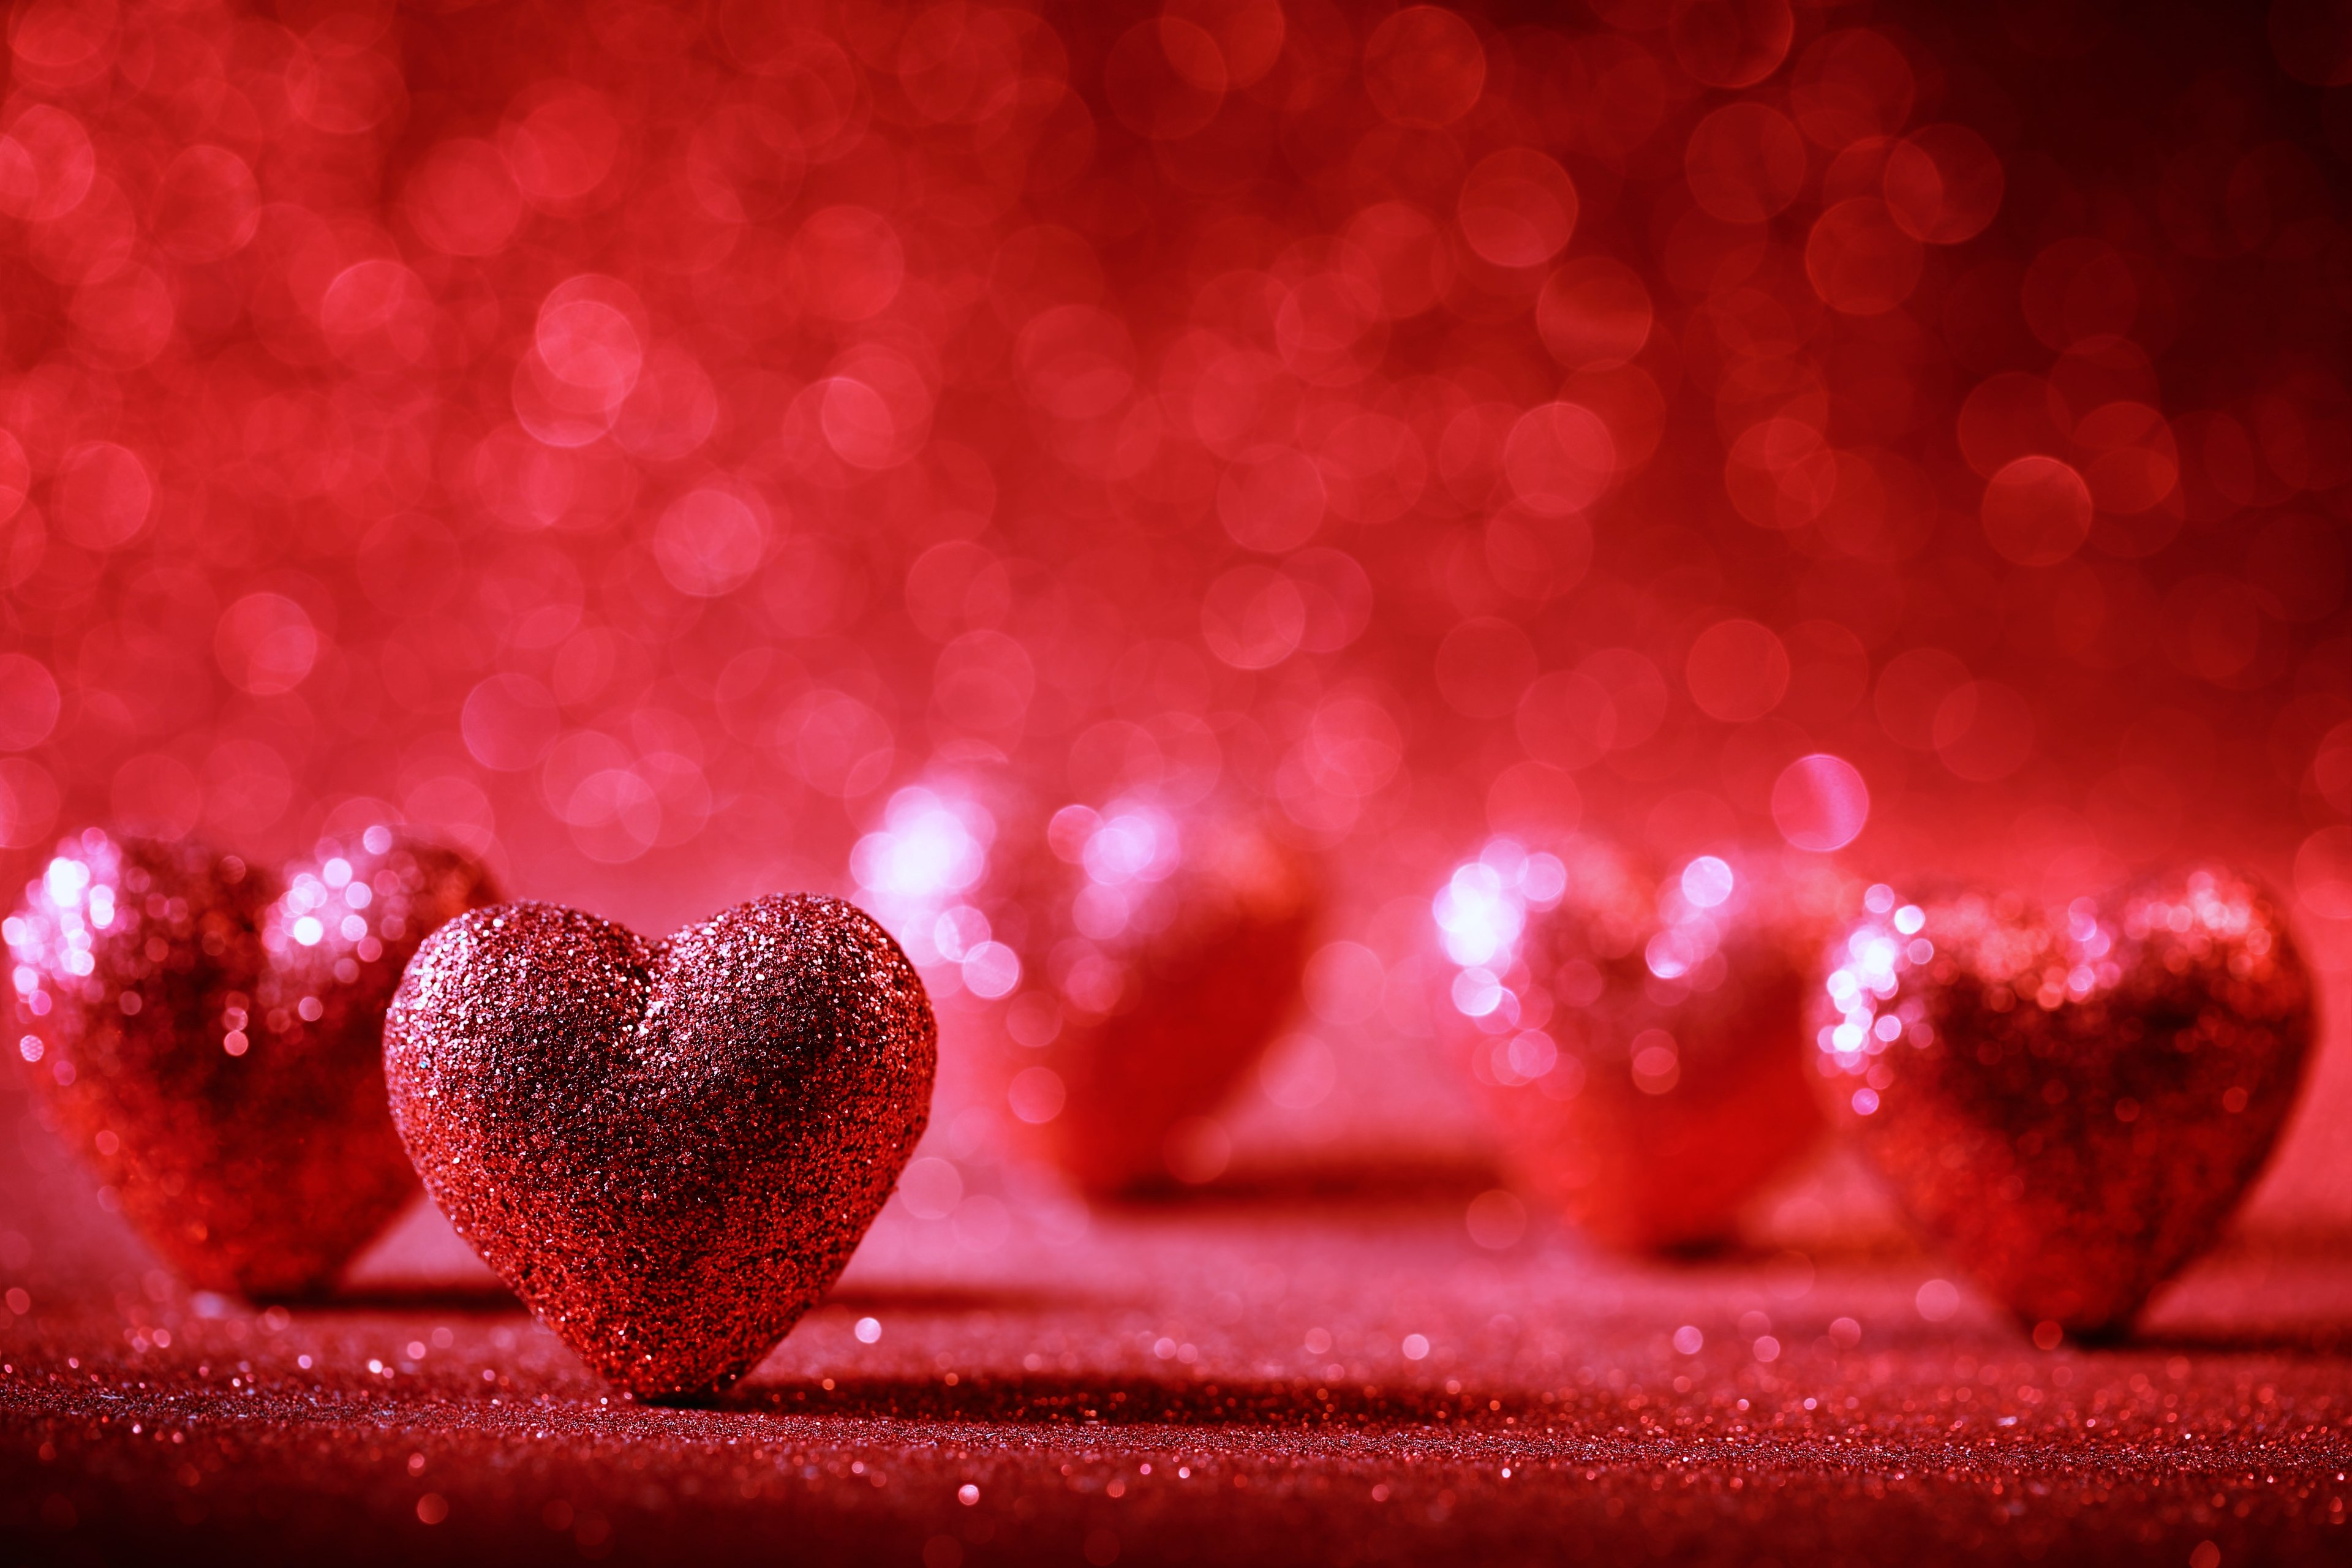 Emotional Love Wallpaper In Hd : Hearts red love romance emotions backgroung wallpapers beauty Decoration wallpaper 3840x2560 ...